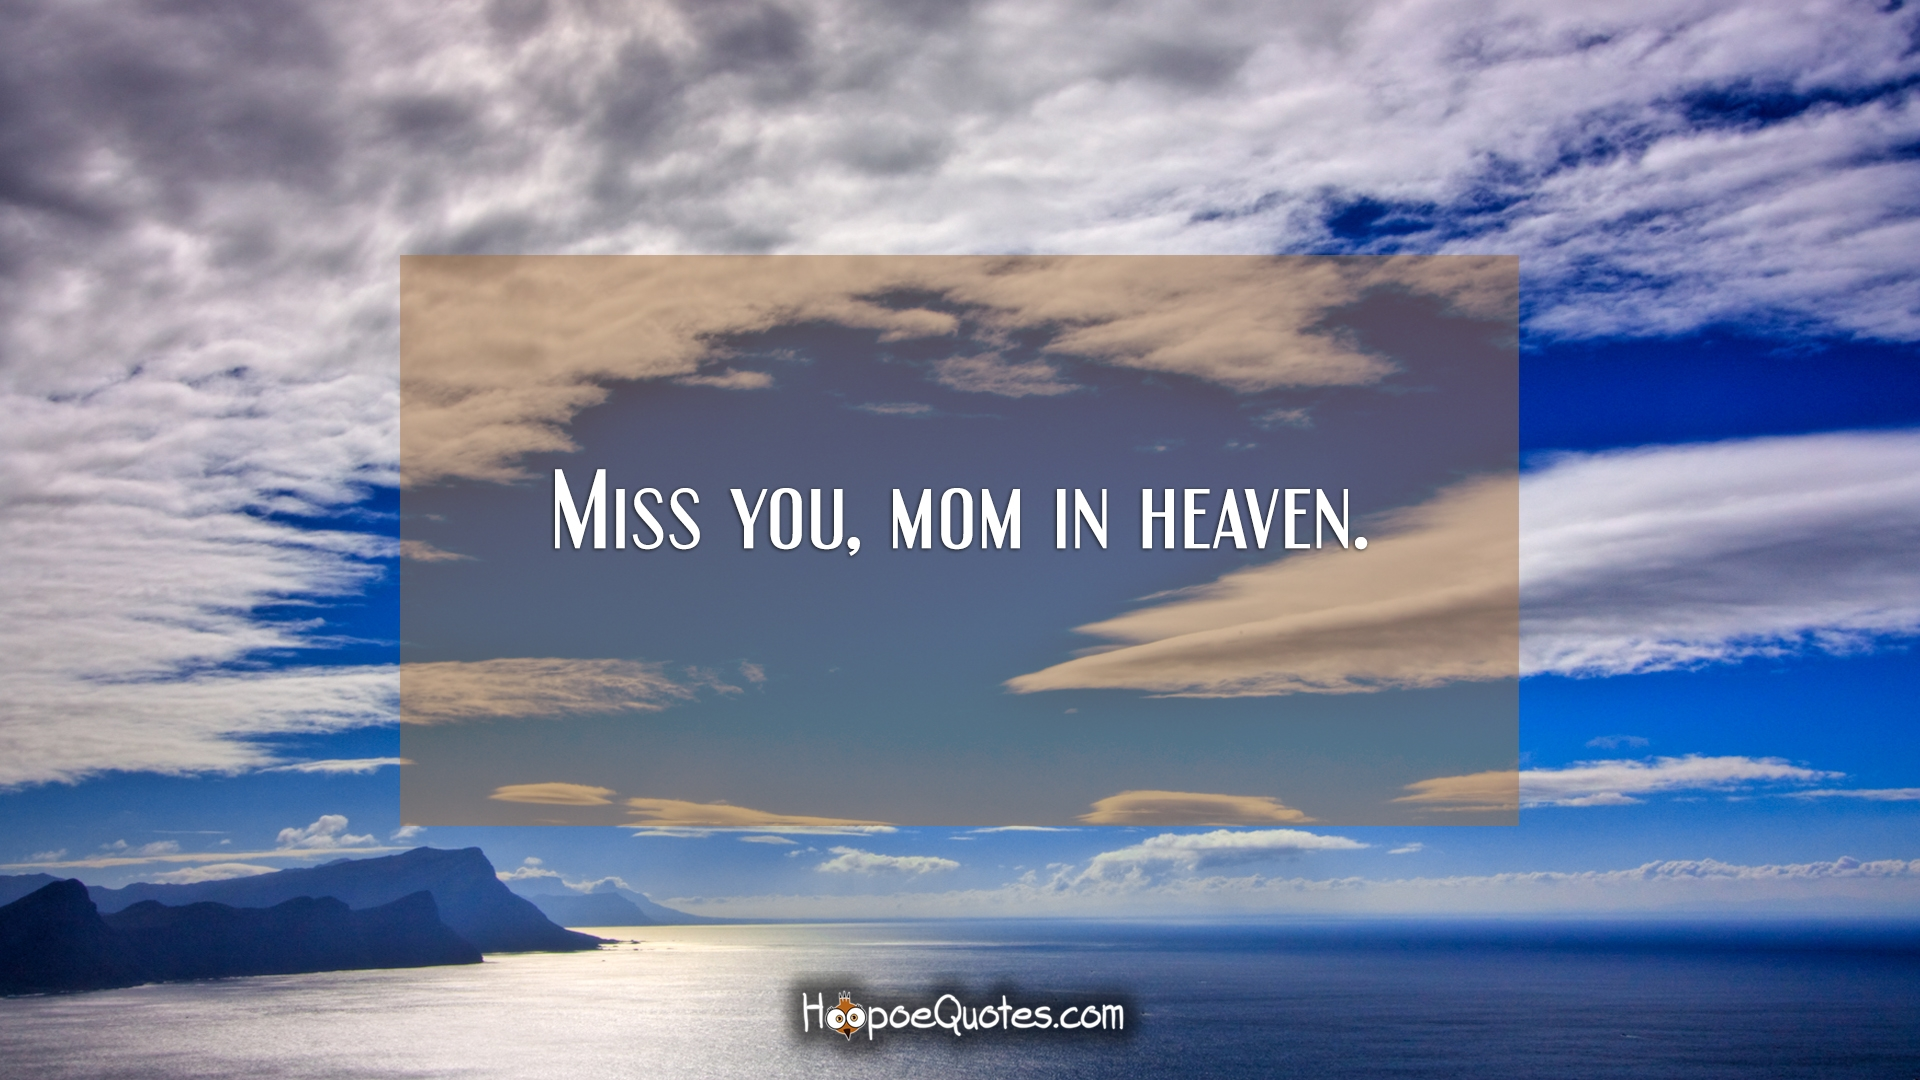 Miss You Mom In Heaven Hoopoequotes